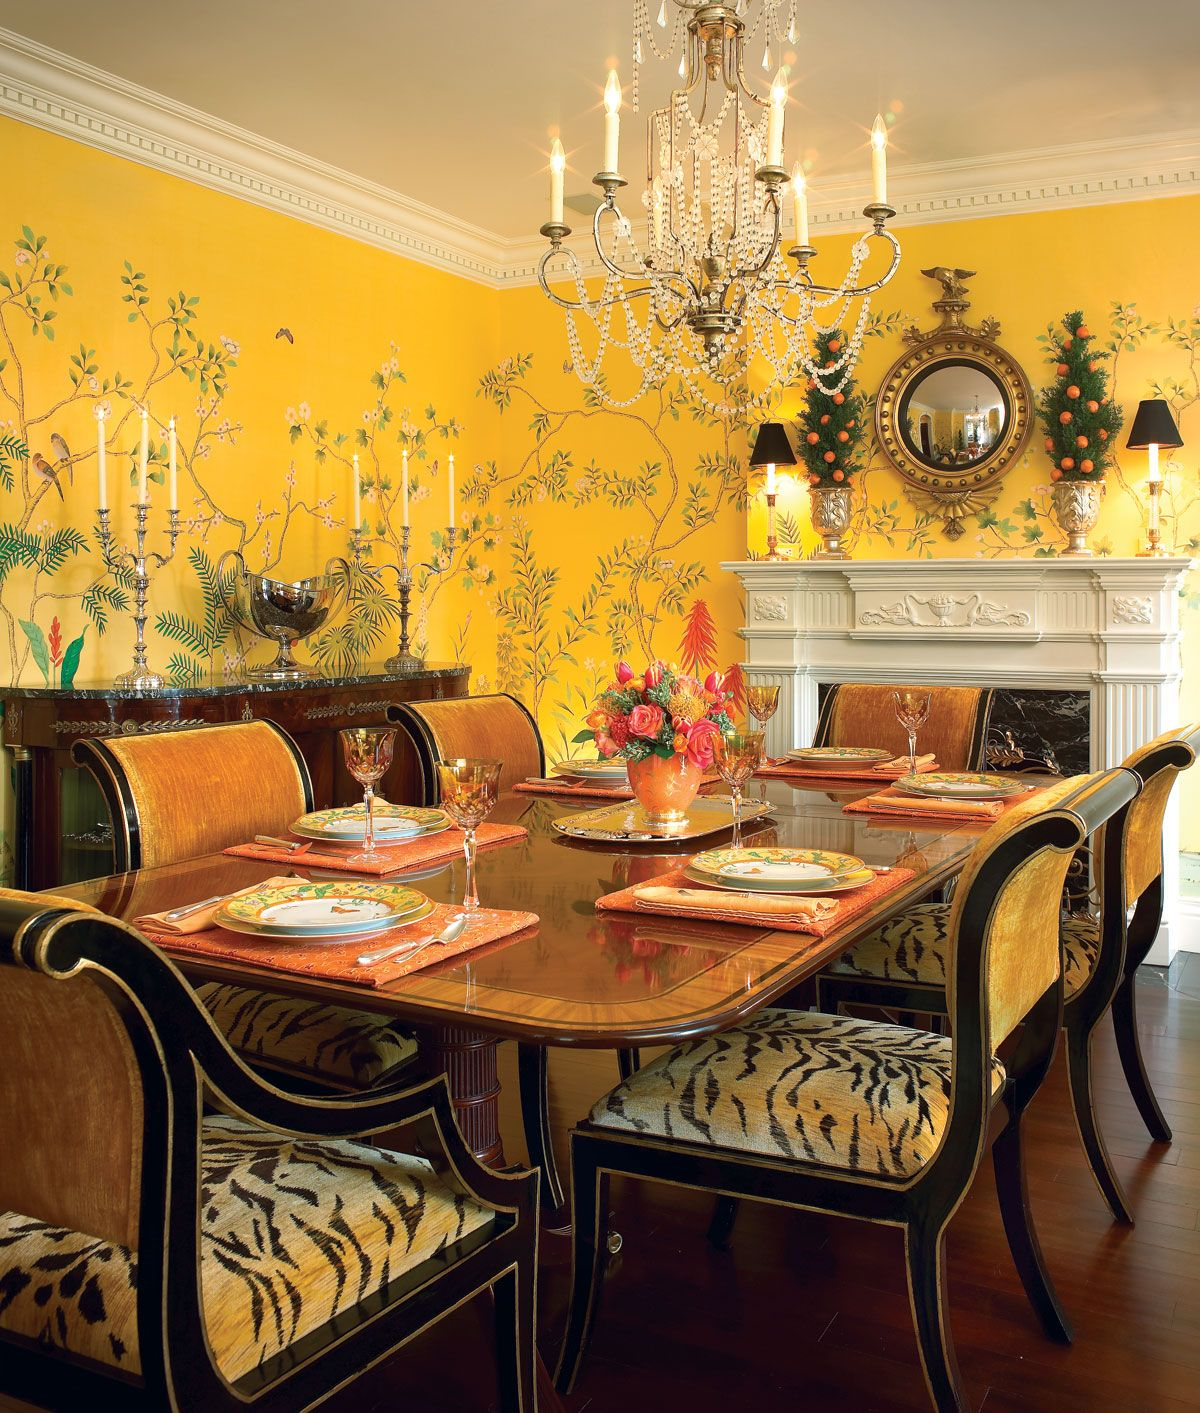 25 Elegant And Exquisite Gray Dining Room Ideas: Gracious Elegance In The Gables